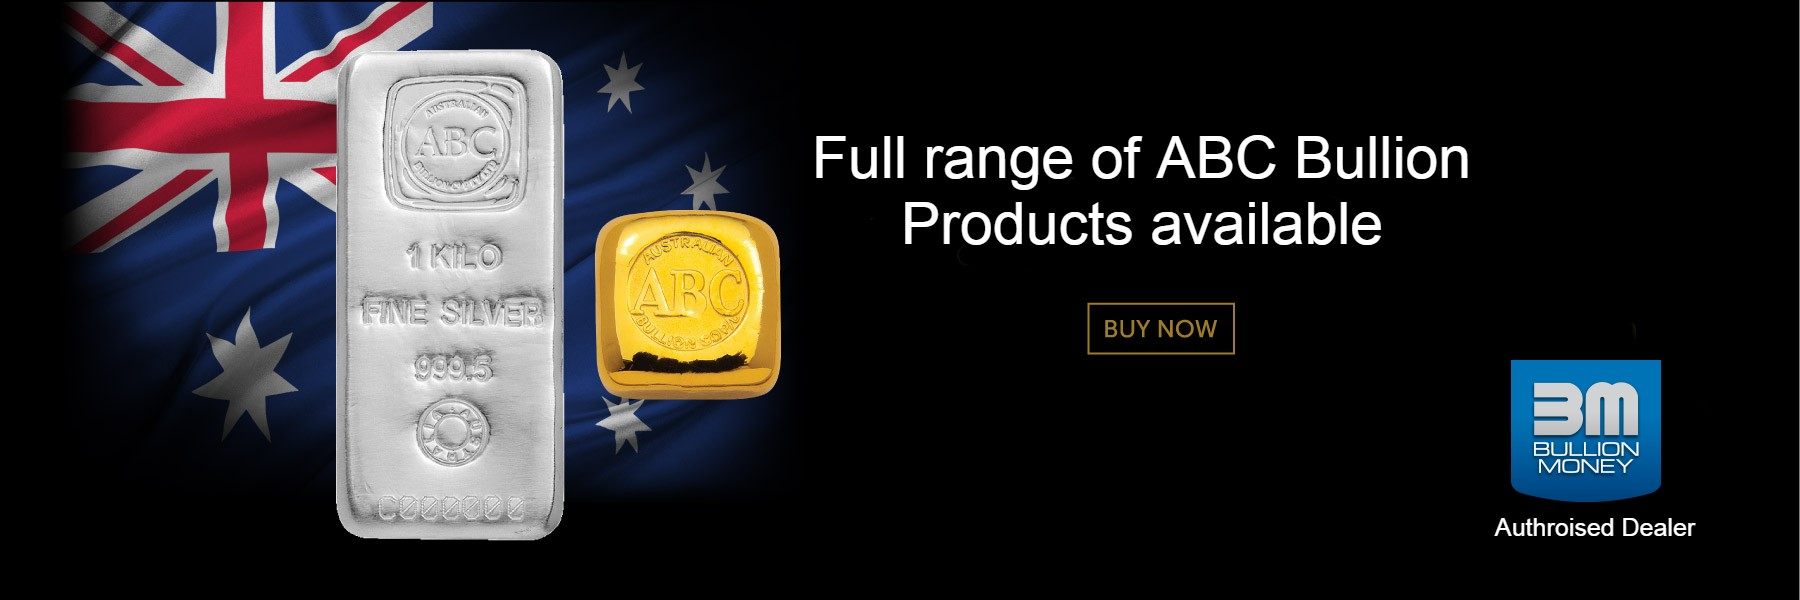 ABC bullion bars